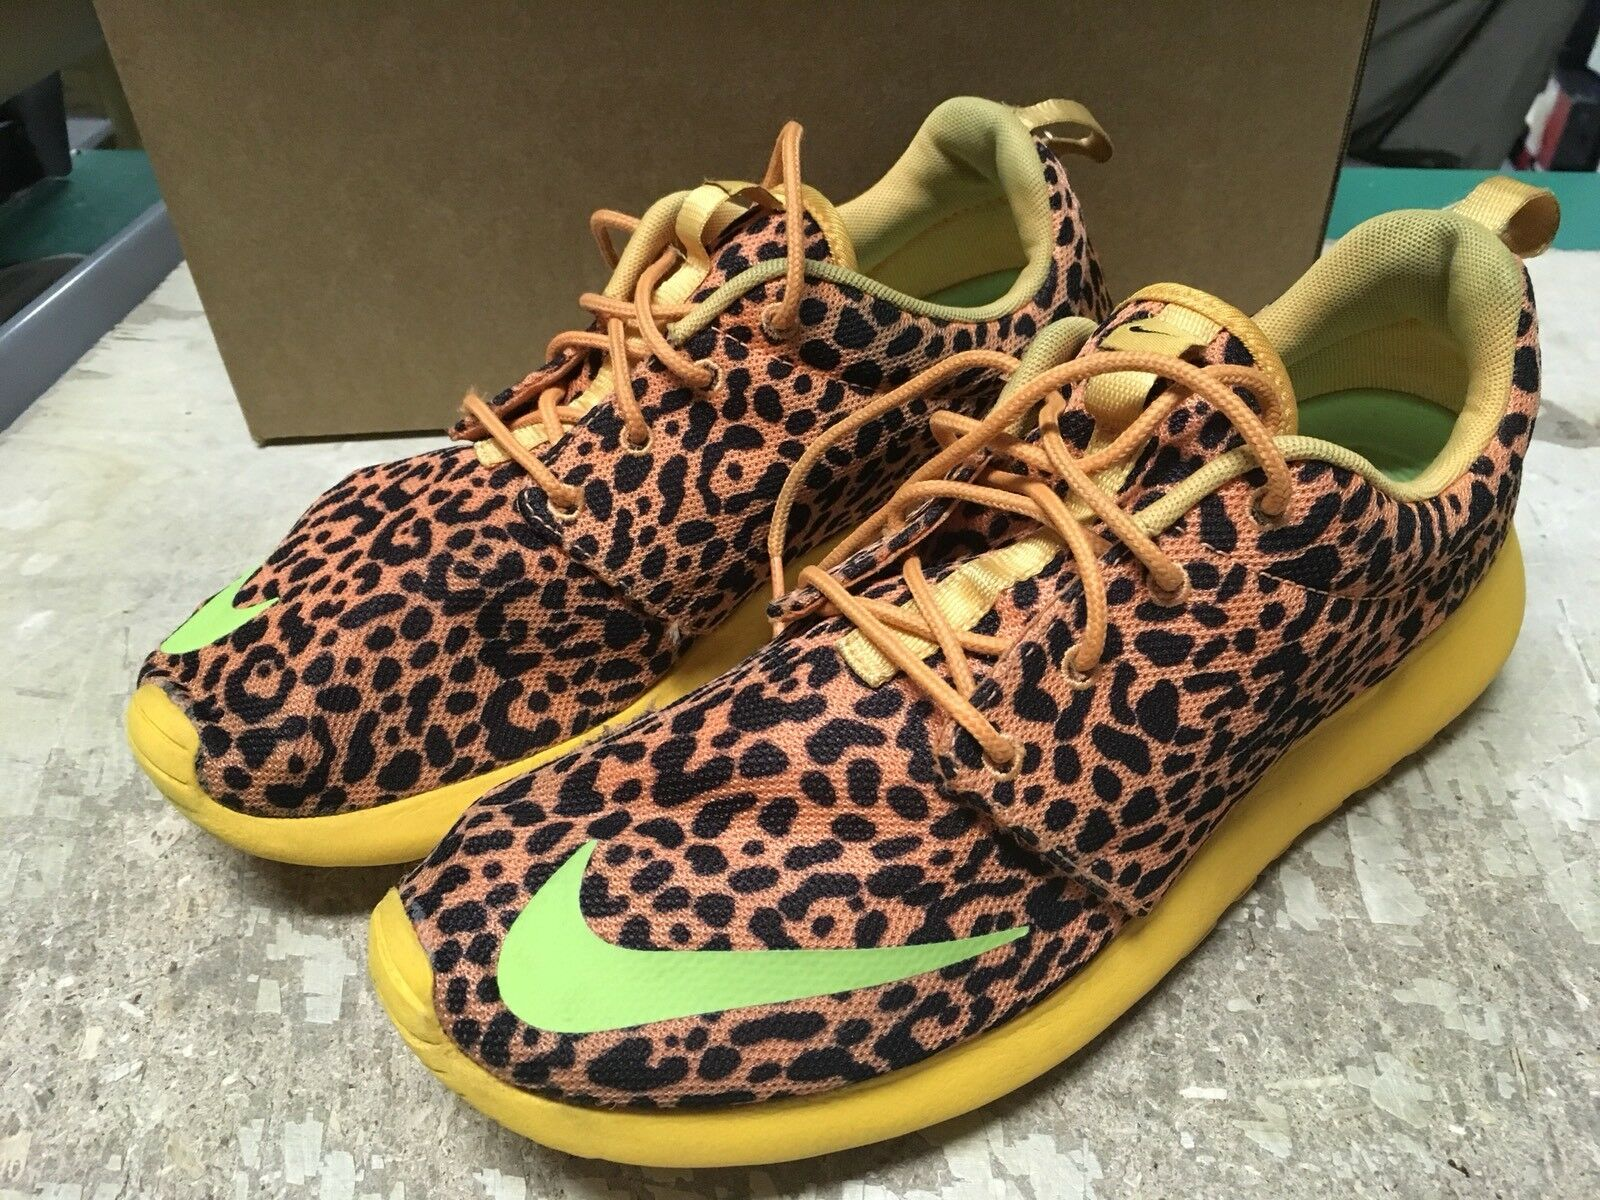 USED NIKE MENS AIR ROSHERUN LEOPARD CHEETAH 580573 838 Price reduction New shoes for men and women, limited time discount